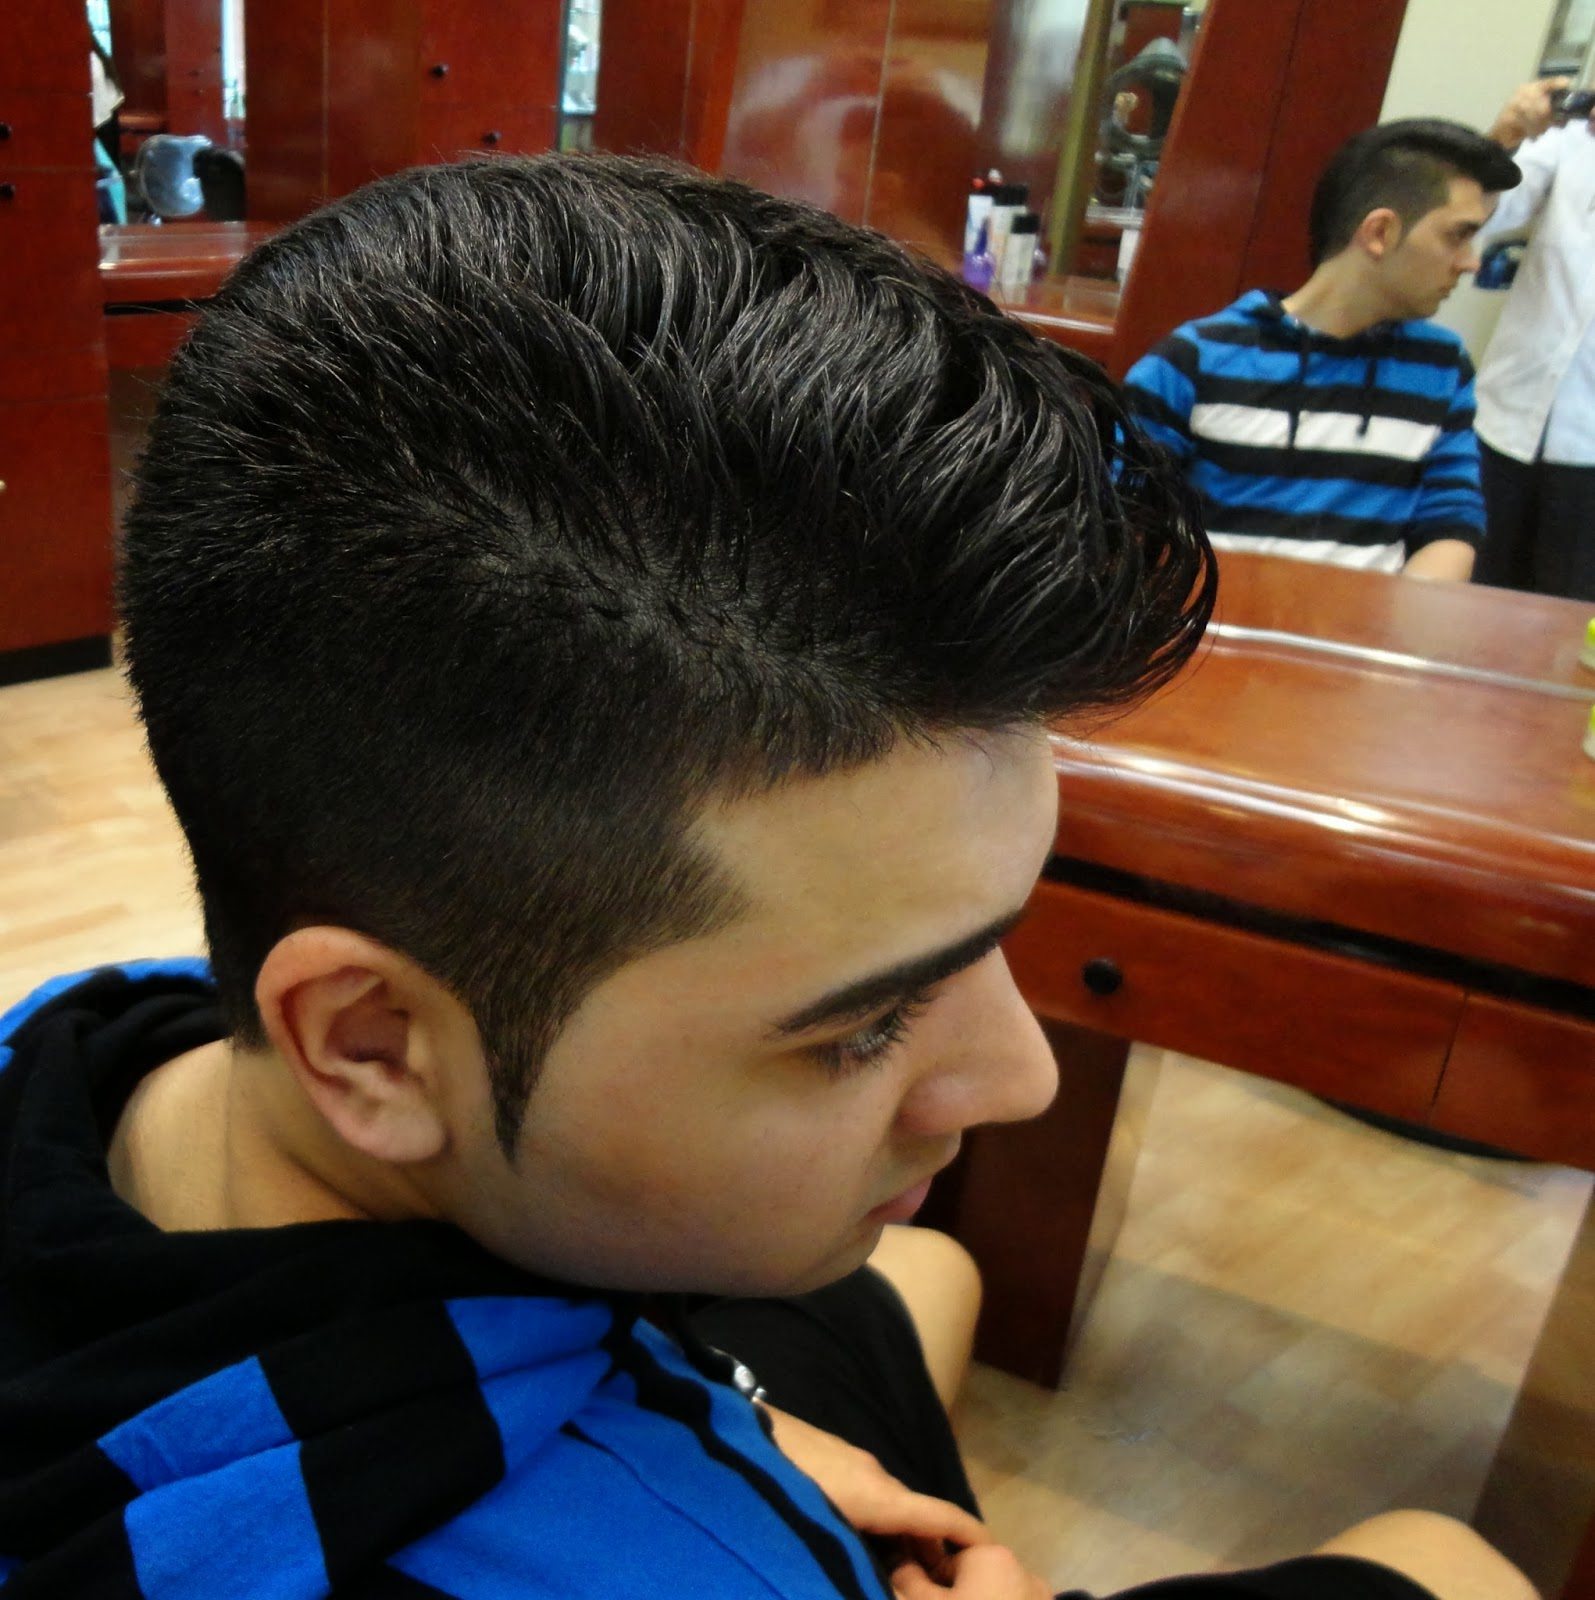 Hair Salon Hairstyles: Best Men's Hair Salon Orange